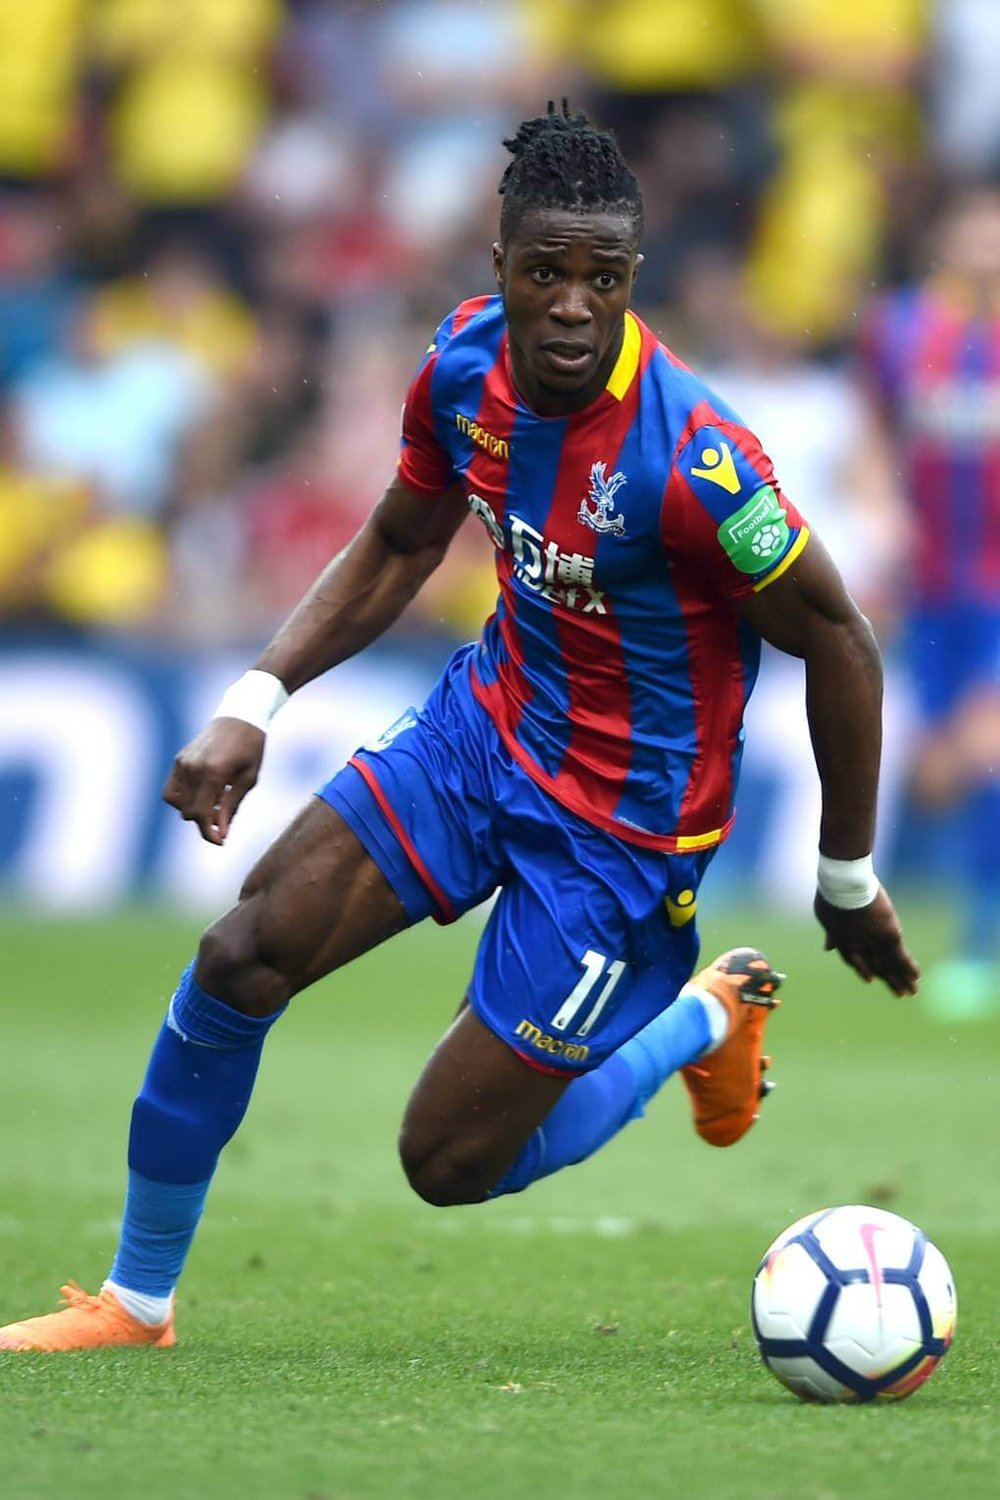 Wilfred Zaha is a player that likes to make a statement on the pitch with his dynamic style of play, as well as making a statement off the pitch with his fashion line.